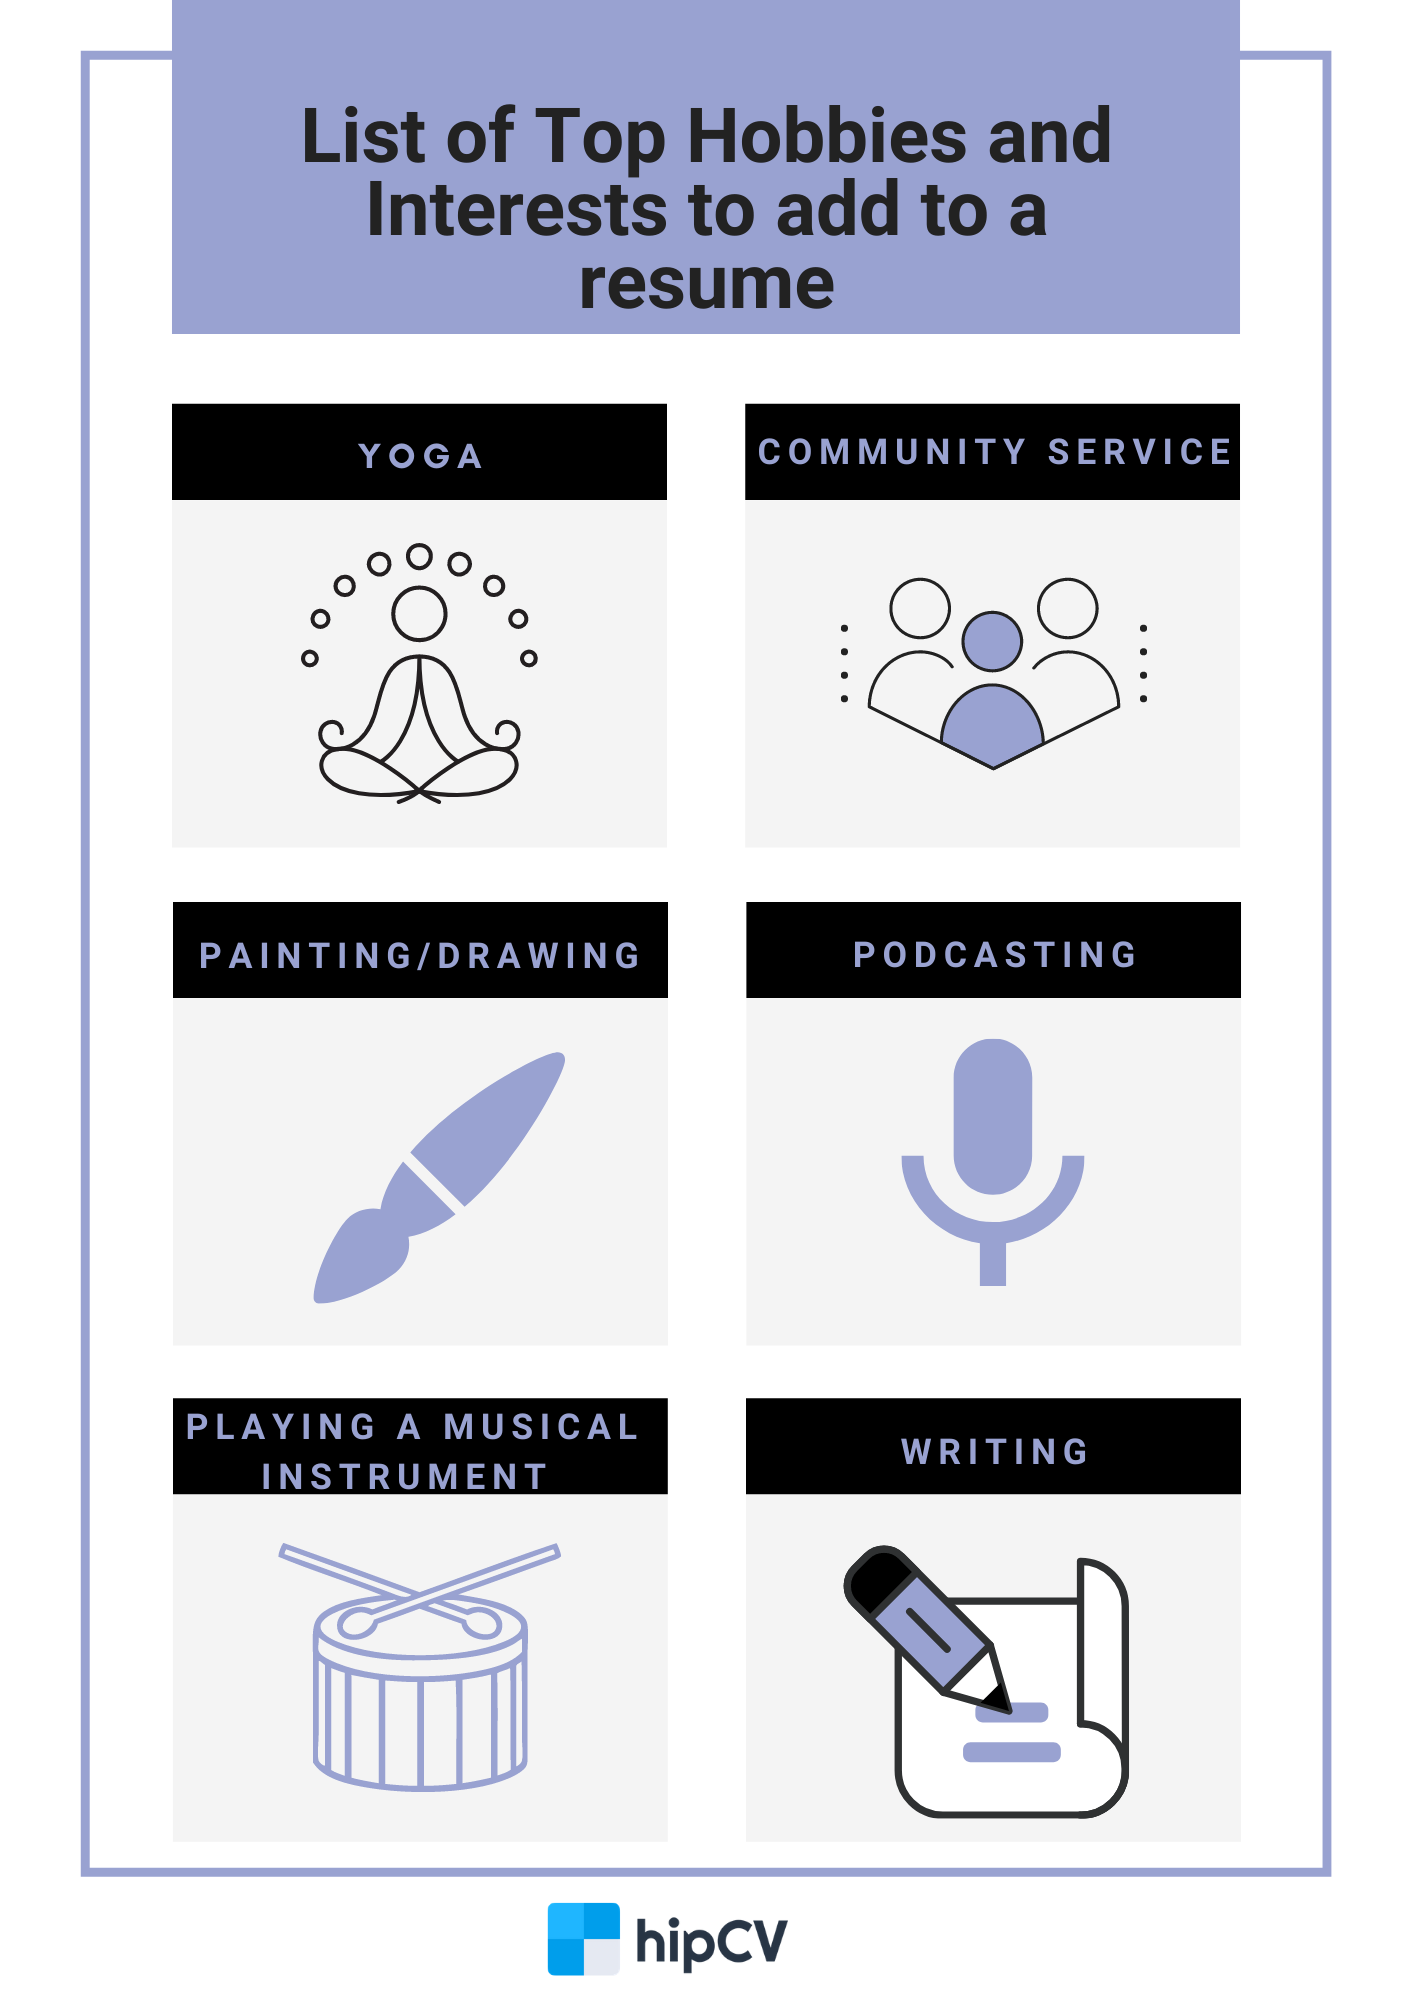 Image for part: Listing hobbies and interests on a resume